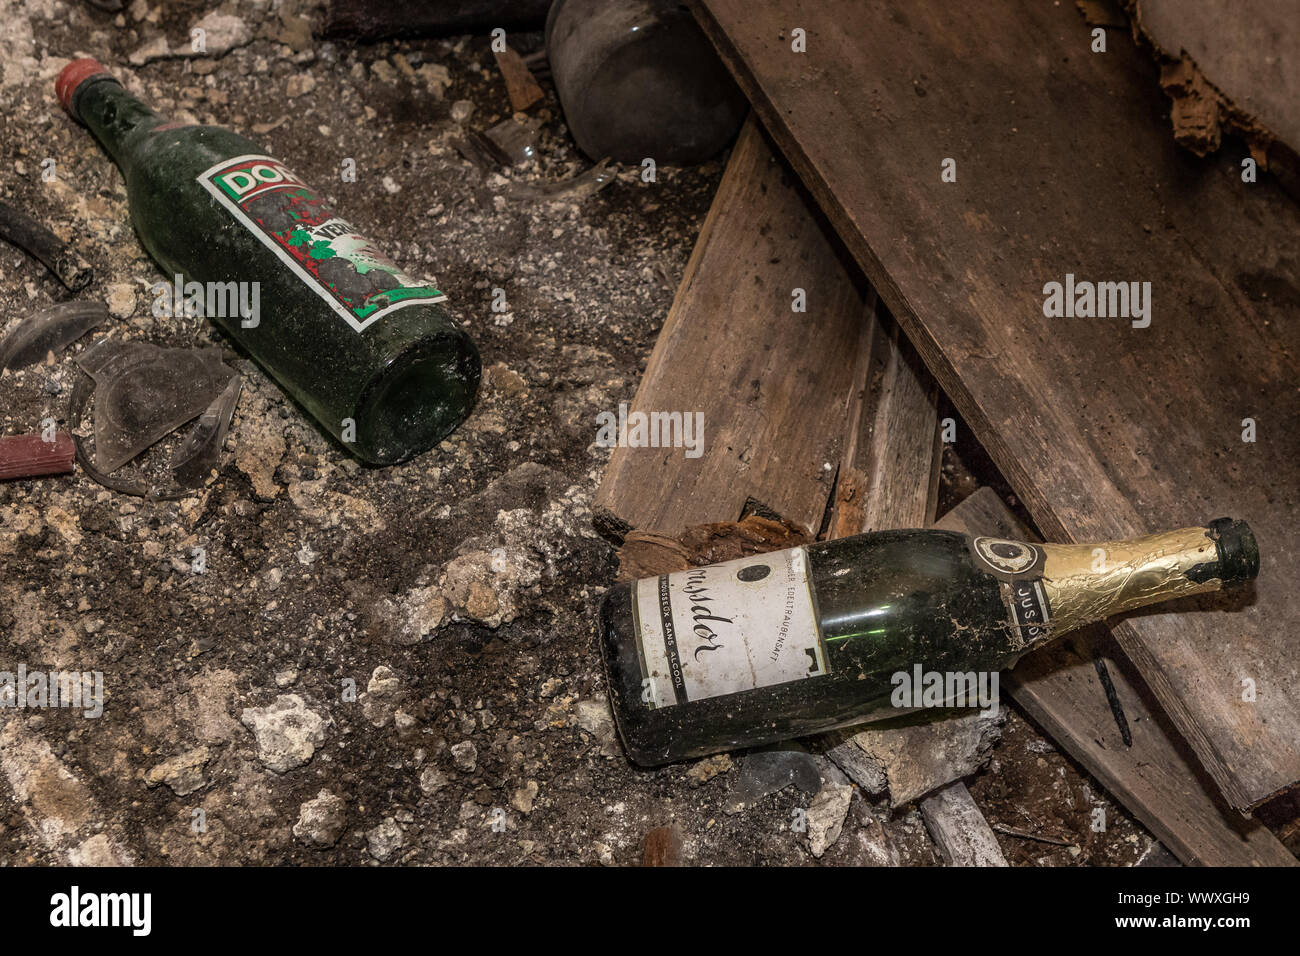 Two champagne and wine bottles are on the floor - Lost Place Stock Photo